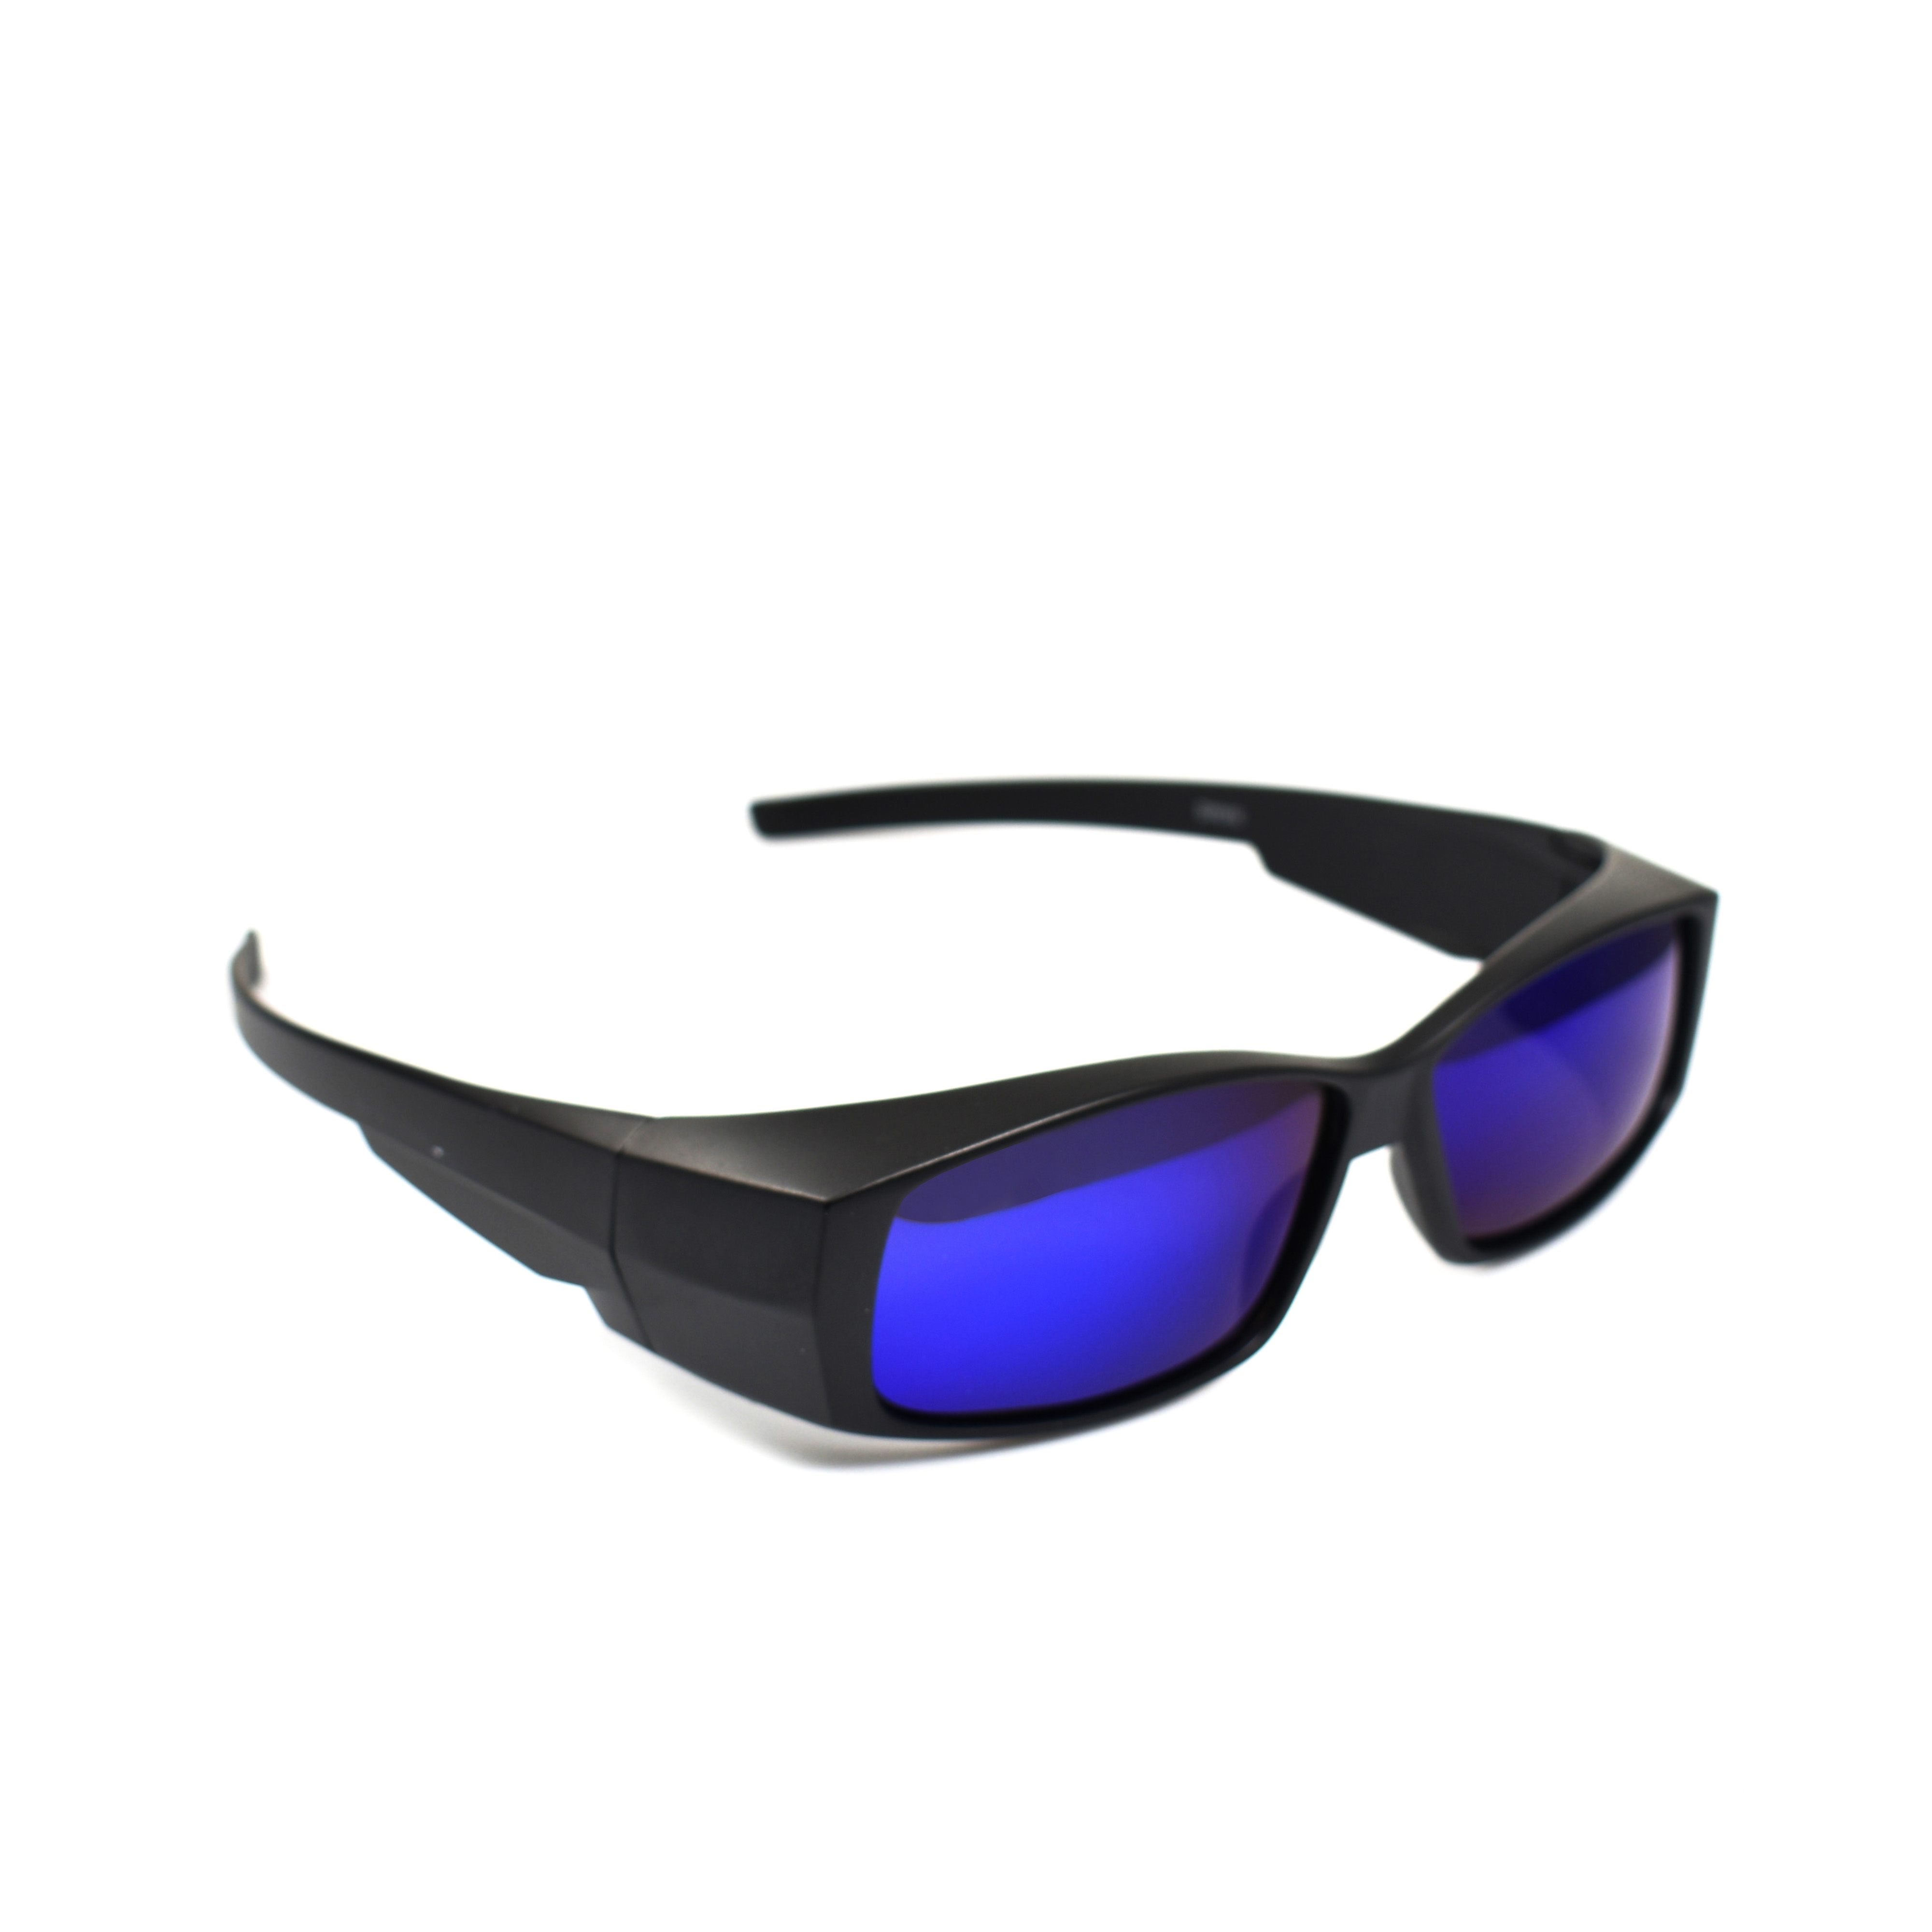 Sergio Matte Black Wearover Blue Lens